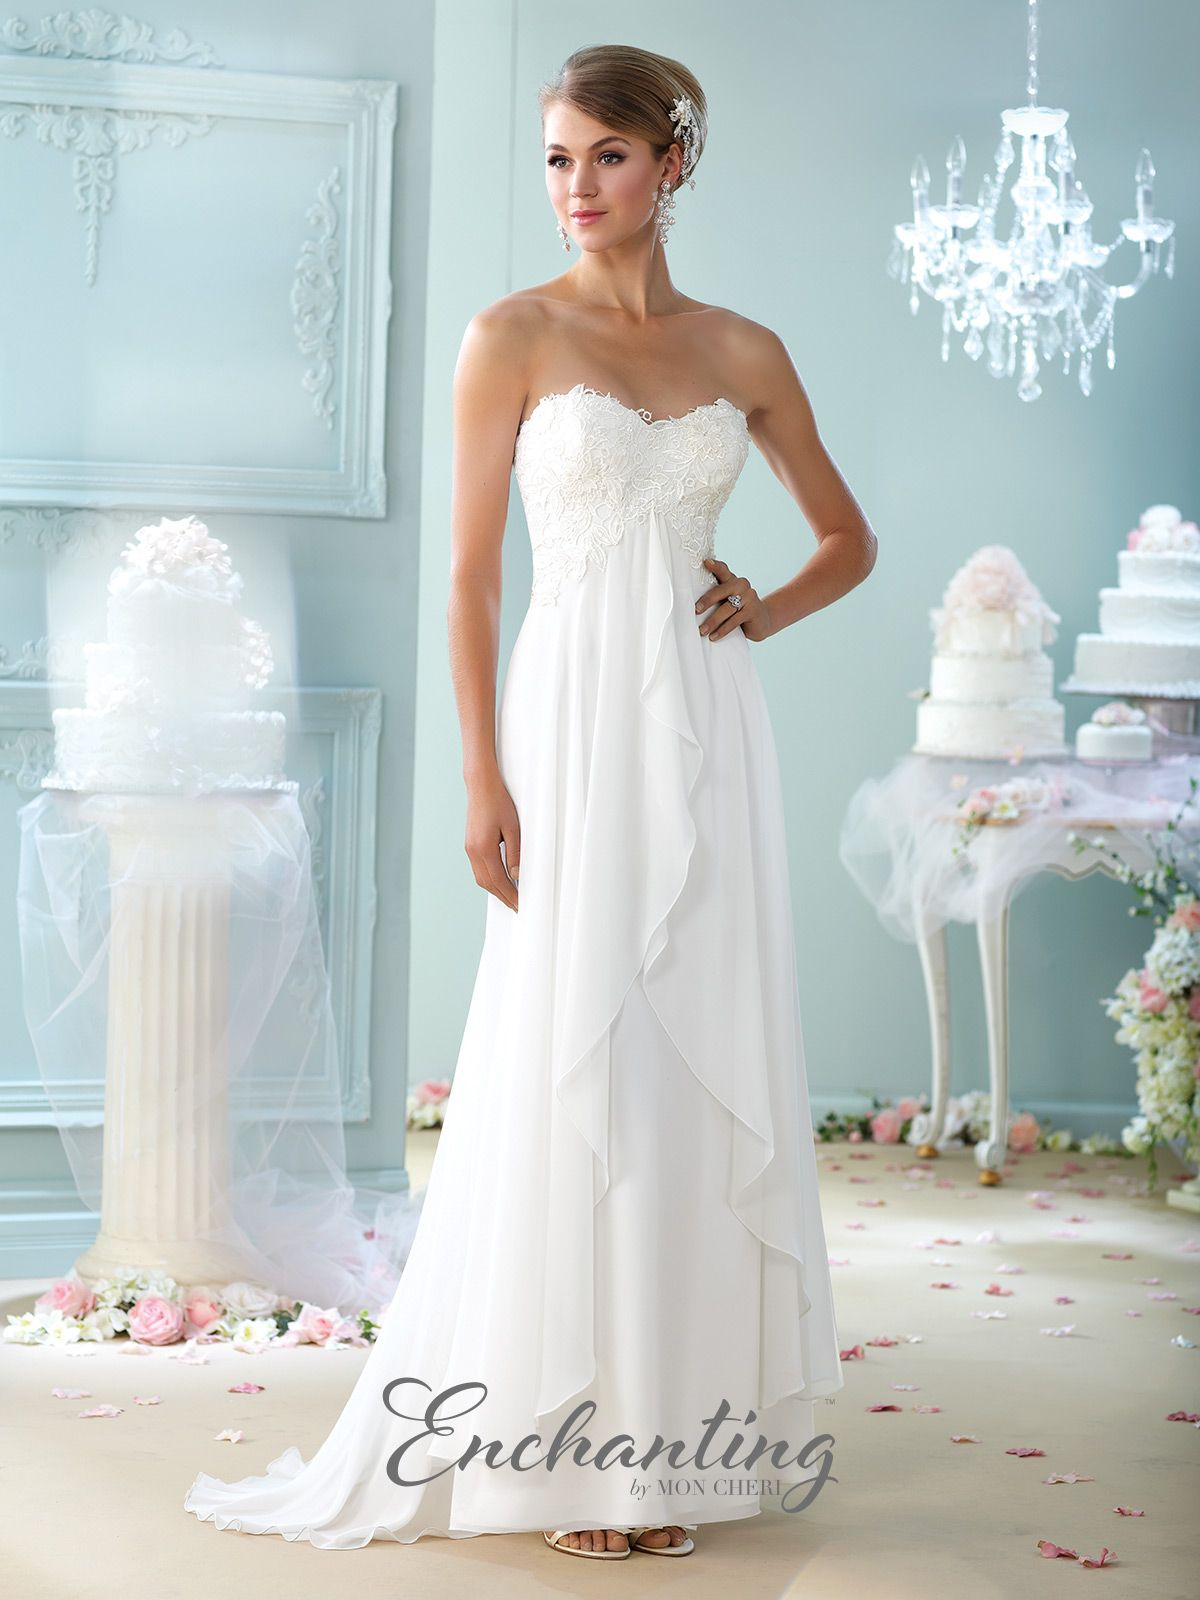 482a76e16 Strapless lace and chiffon A-line gown, sweetheart neckline, empire lace  bodice,